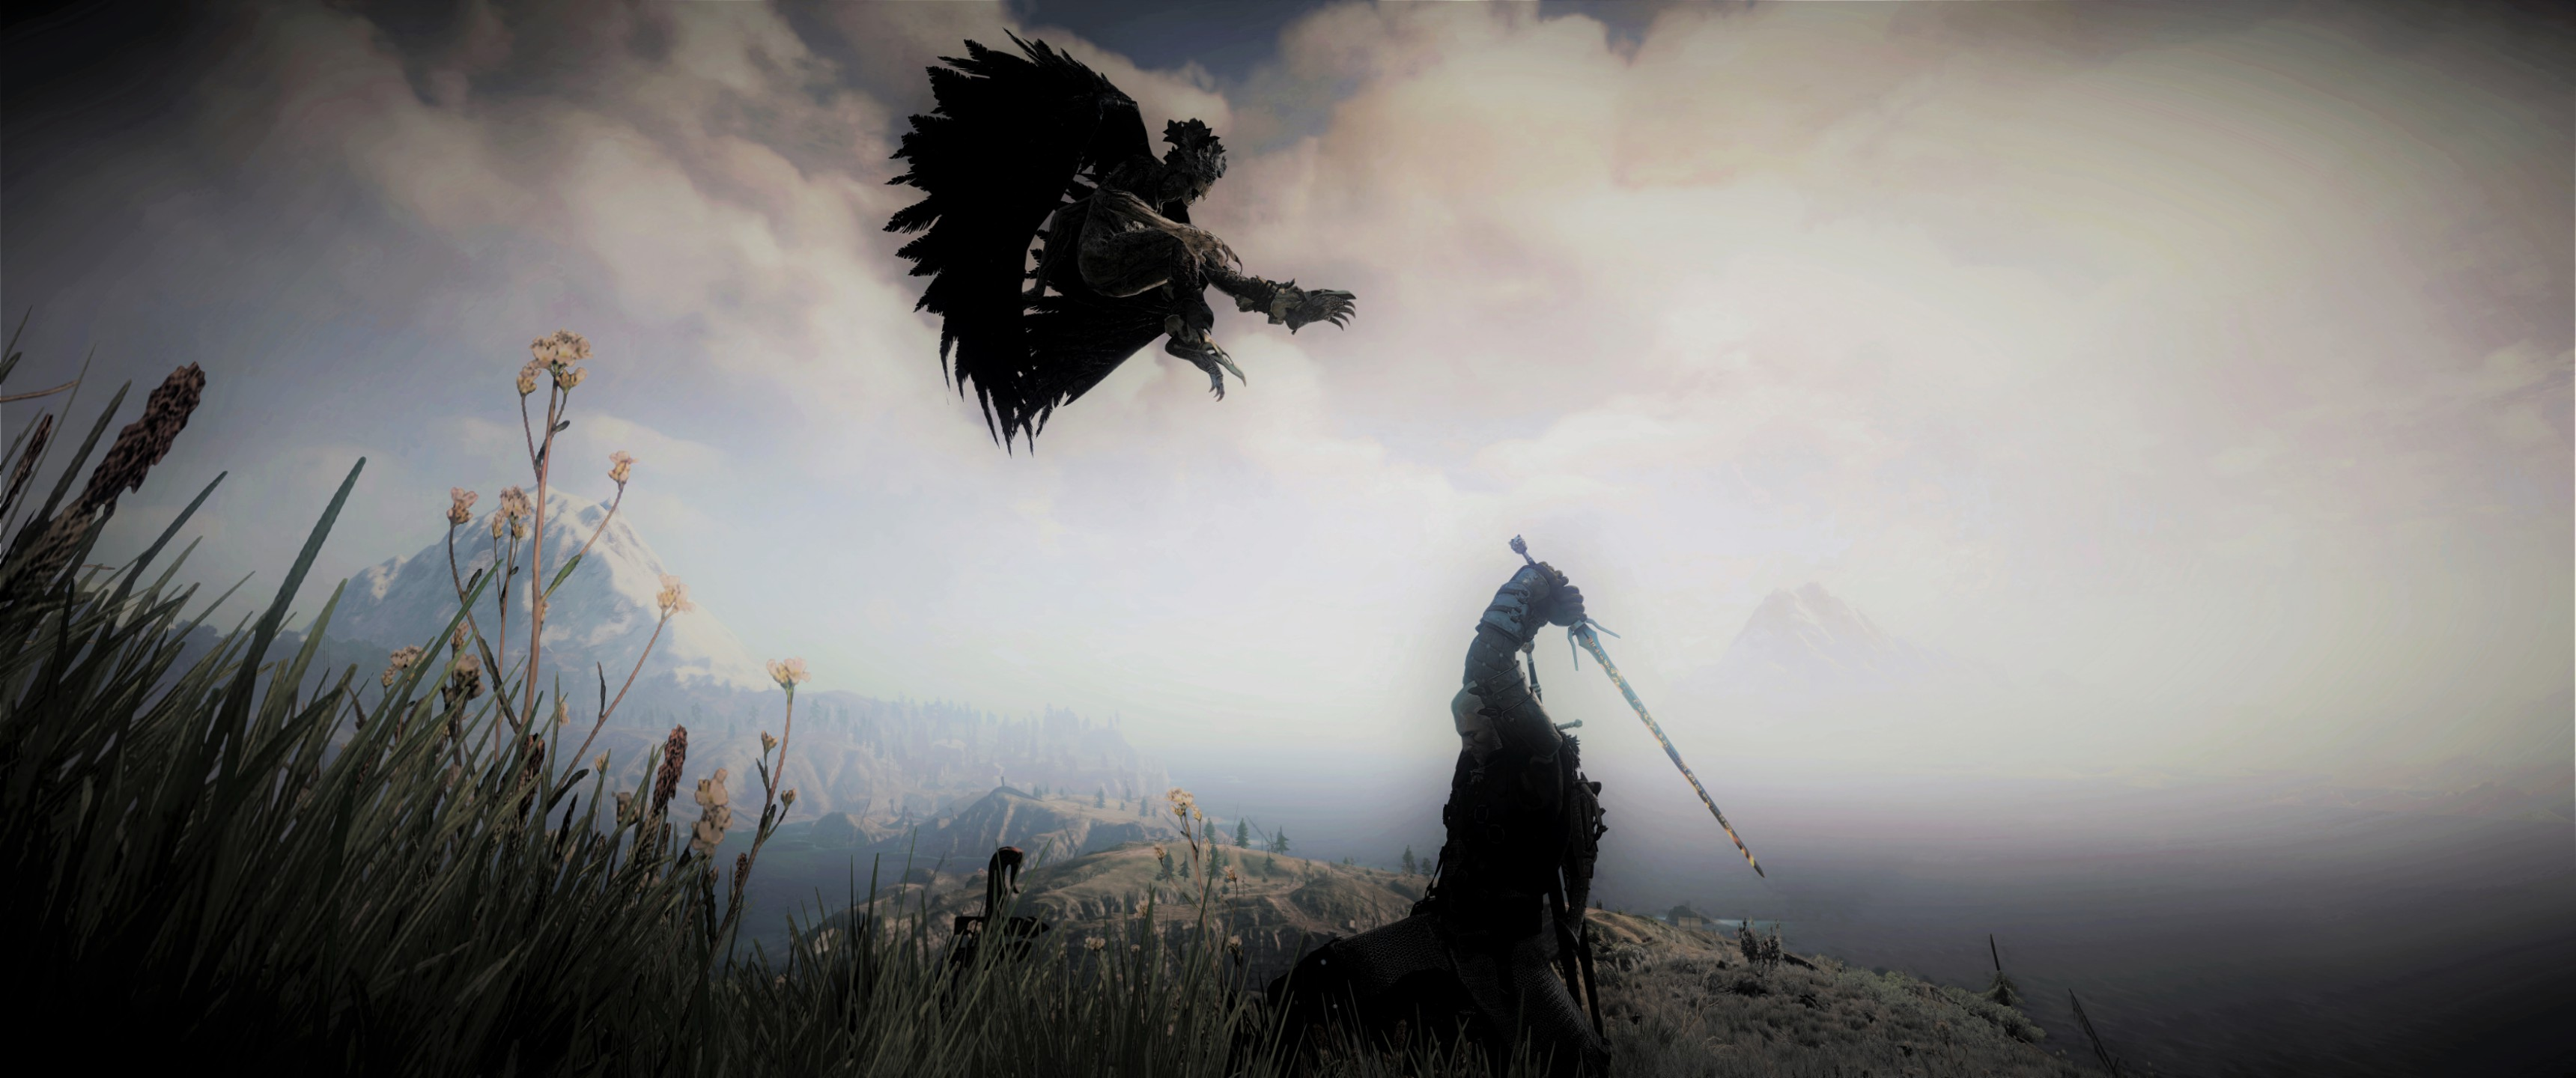 Skellige fight hd wallpaper background image 3440x1440 - Fantasy wallpaper 3440x1440 ...